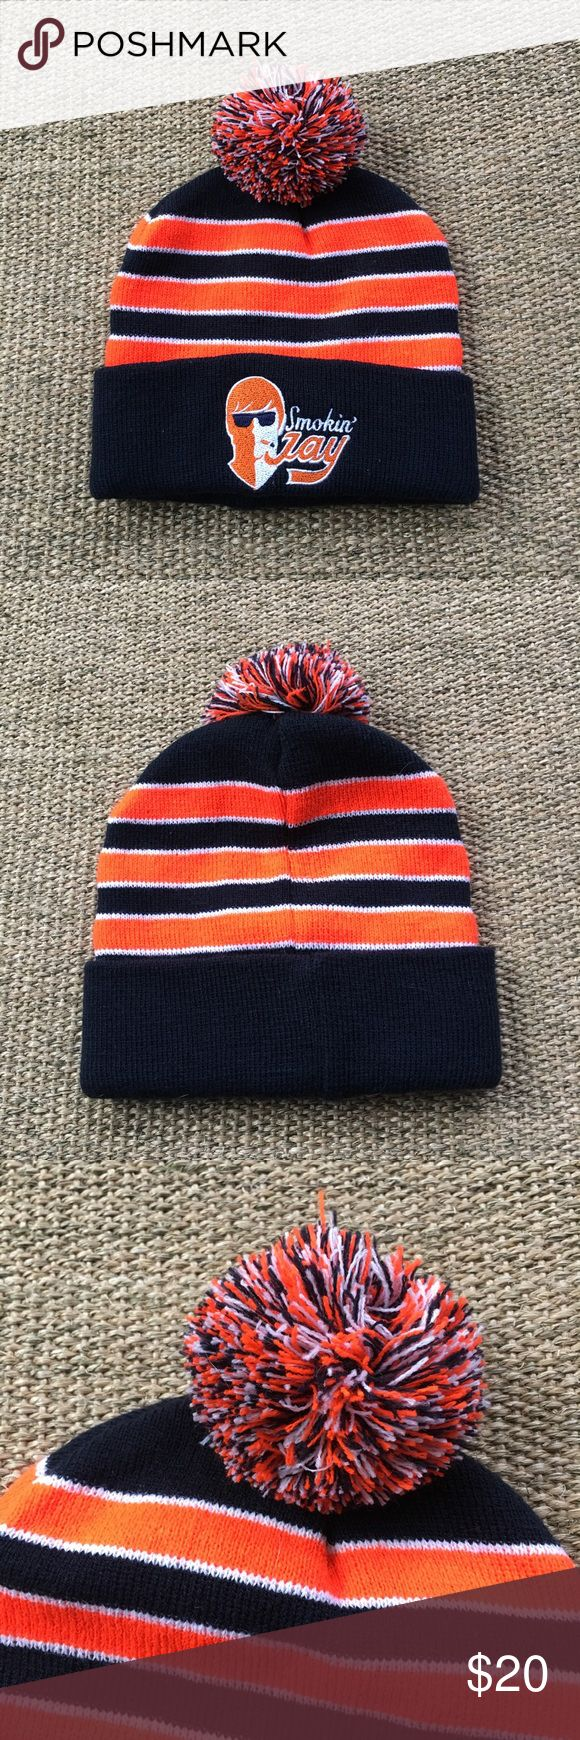 🆕 Chicago Bears Smokin' Jay Cutler Beanie Hat Brand new. 😺🐶 Comes from a smoke-free, but not pet-free home. 🚫 No trades. No holds. 📦 Fast shipping! 🙋🏻 Considering all reasonable offers! Accessories Hats